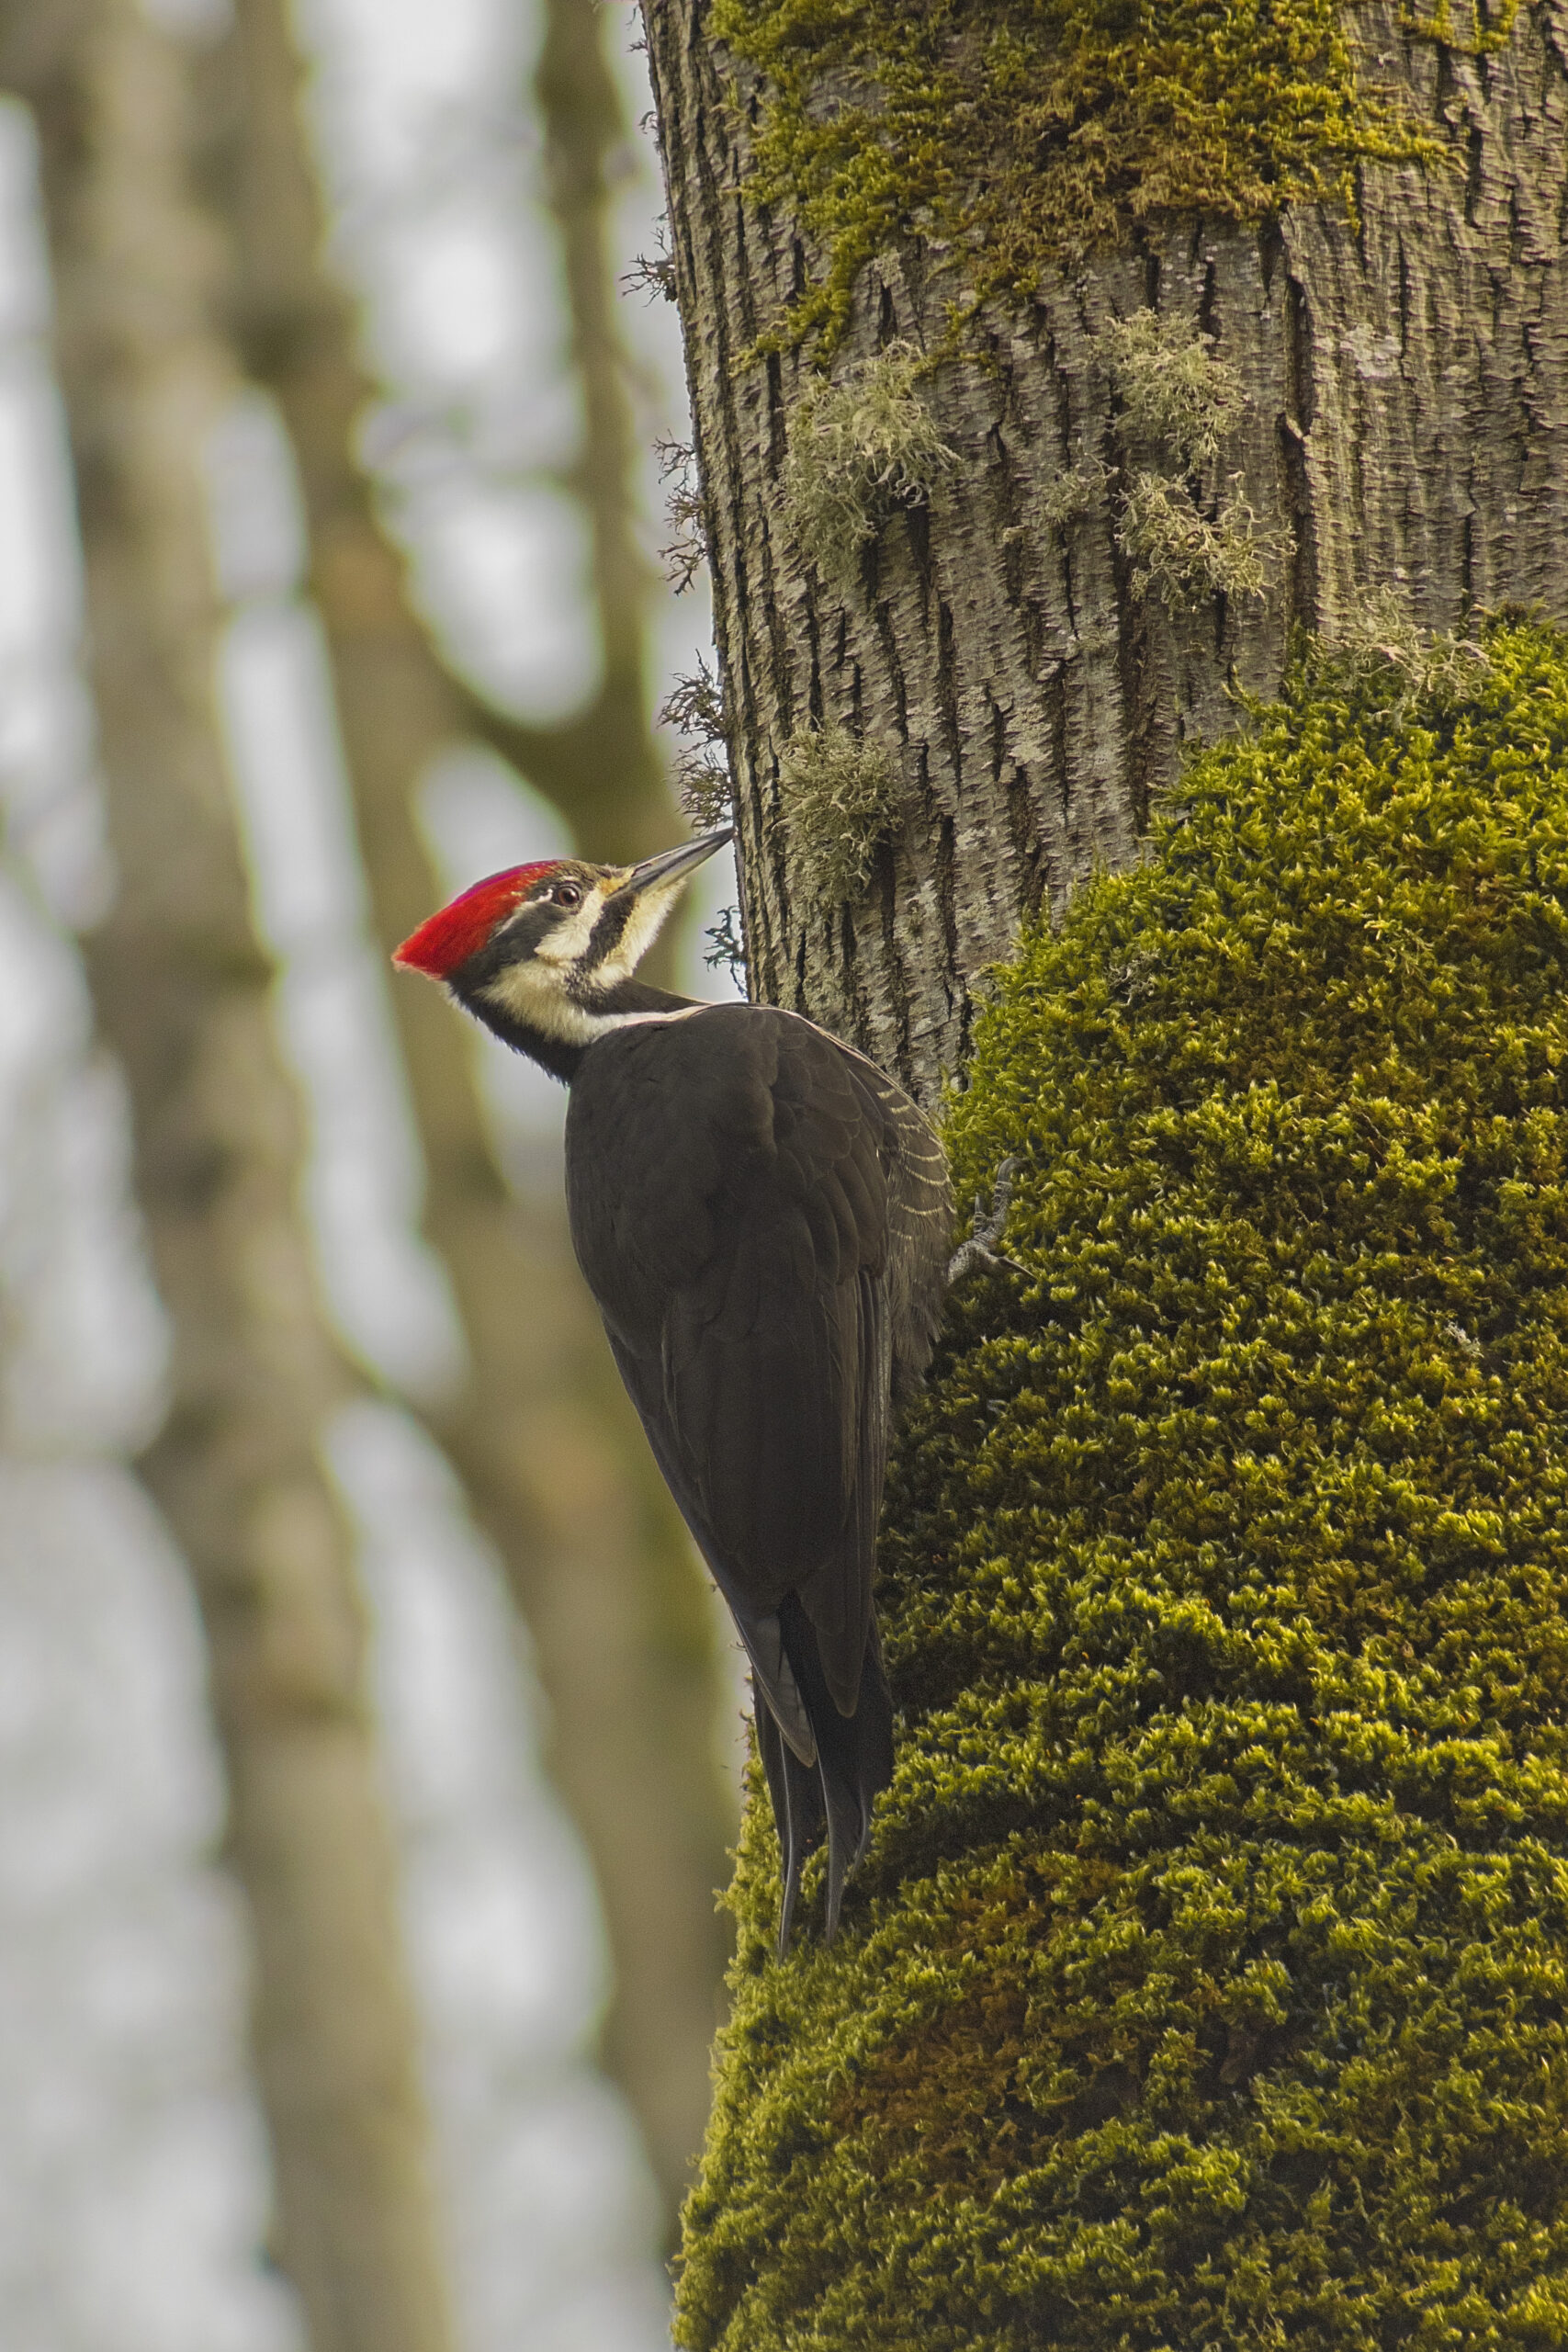 Pileated Woodpecker, March 31, 2021